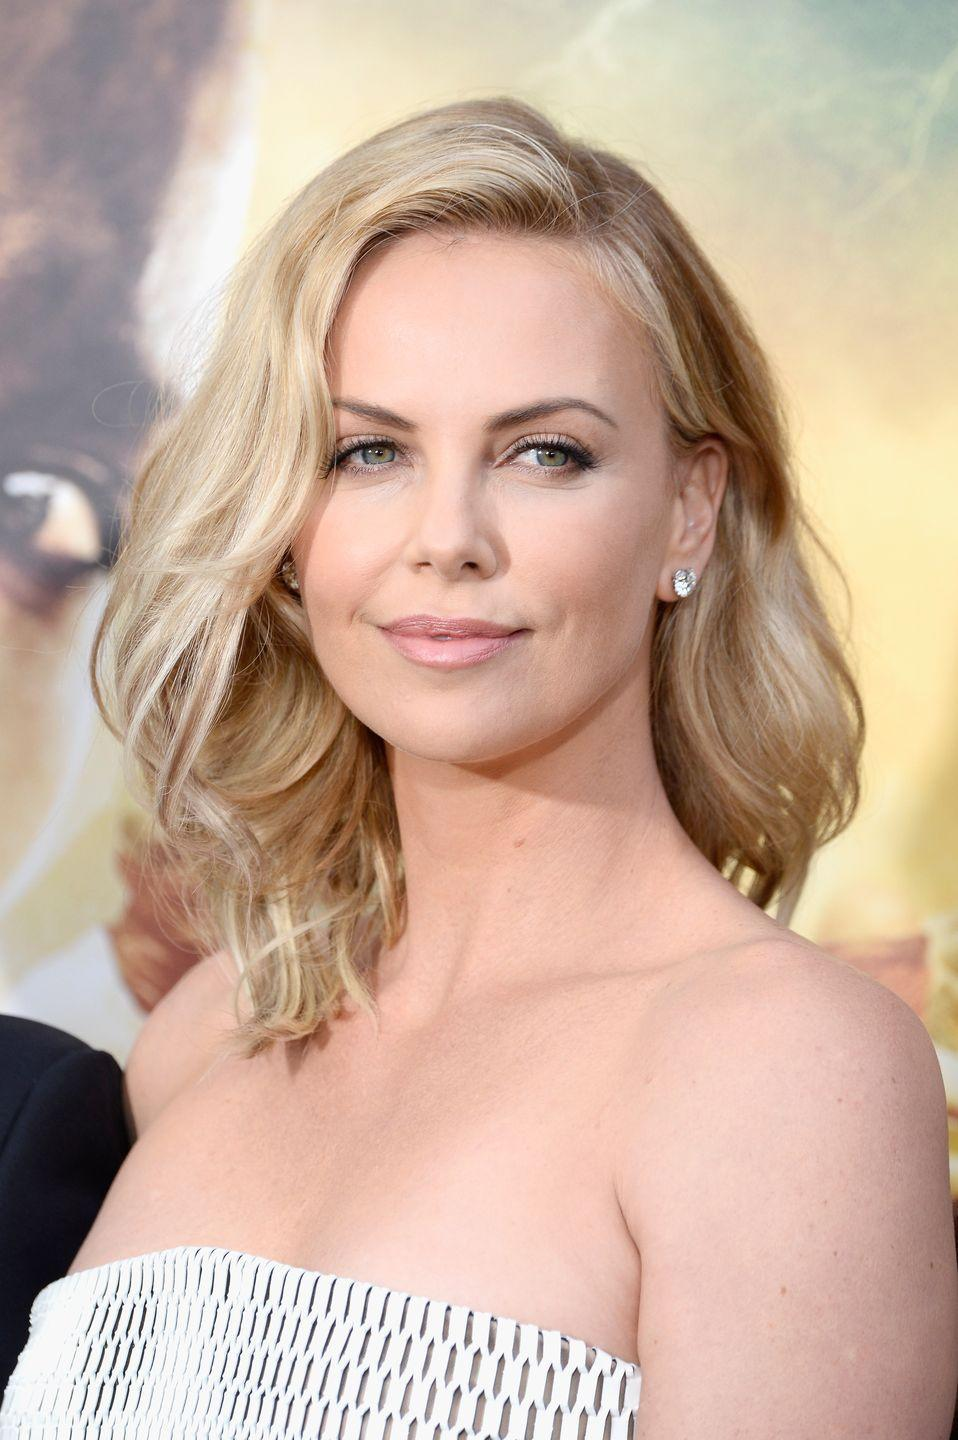 """<p>When asked about the 2000 movie, Theron simply <a href=""""http://people.com/celebrity/esquire-names-charlize-theron-the-sexiest-woman/"""" rel=""""nofollow noopener"""" target=""""_blank"""" data-ylk=""""slk:stated"""" class=""""link rapid-noclick-resp"""">stated</a>, """"That was a bad, bad, bad movie."""" </p>"""